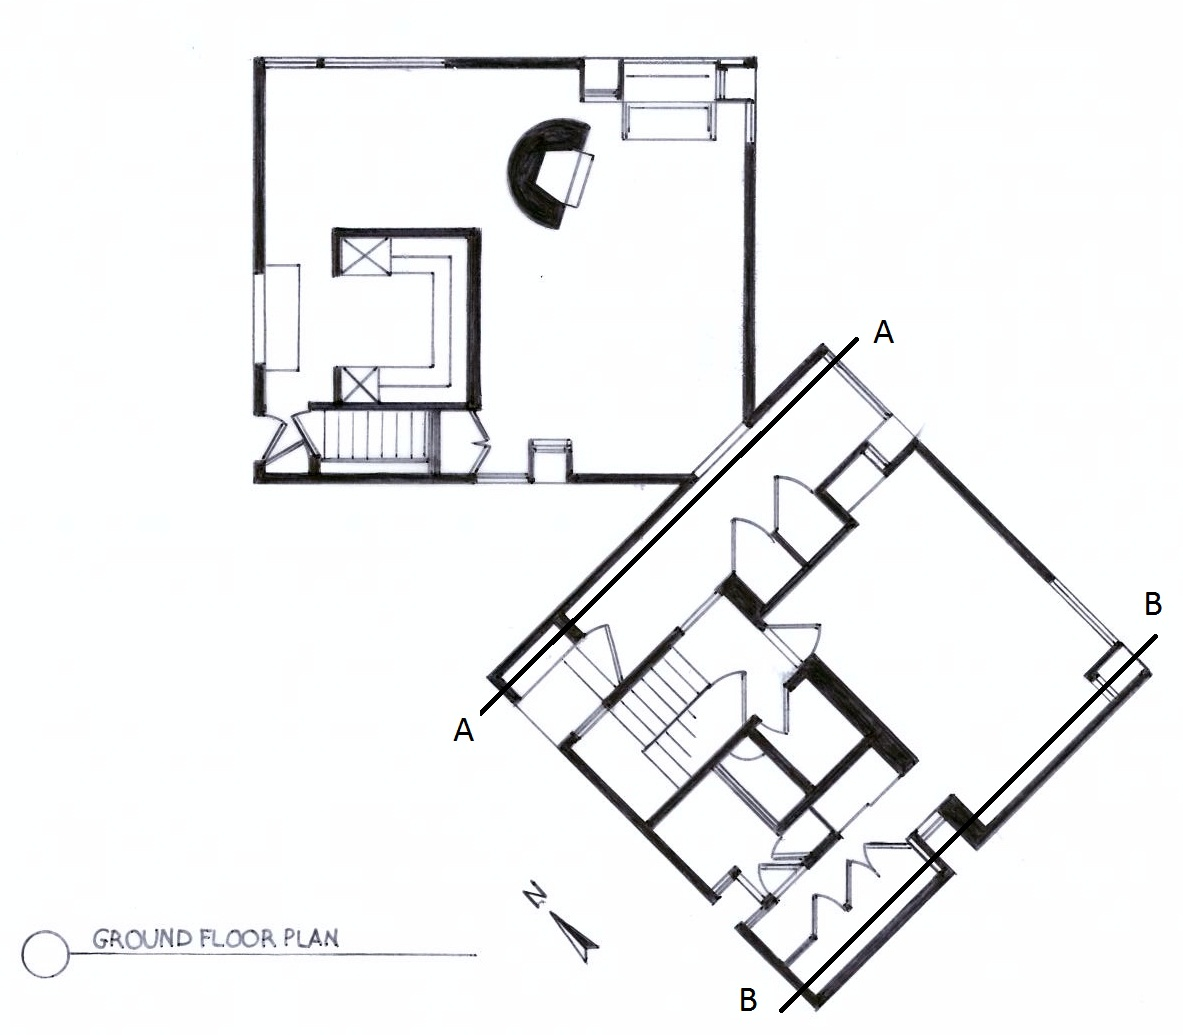 floor+plan+for+section The Fisher House Floor Plan In Bronx on esherick house floor plan, richard neutra house floor plan, fisher house louis kahn cad, avery fisher hall floor plan, home alone house floor plan, louis kahn fisher house plan,